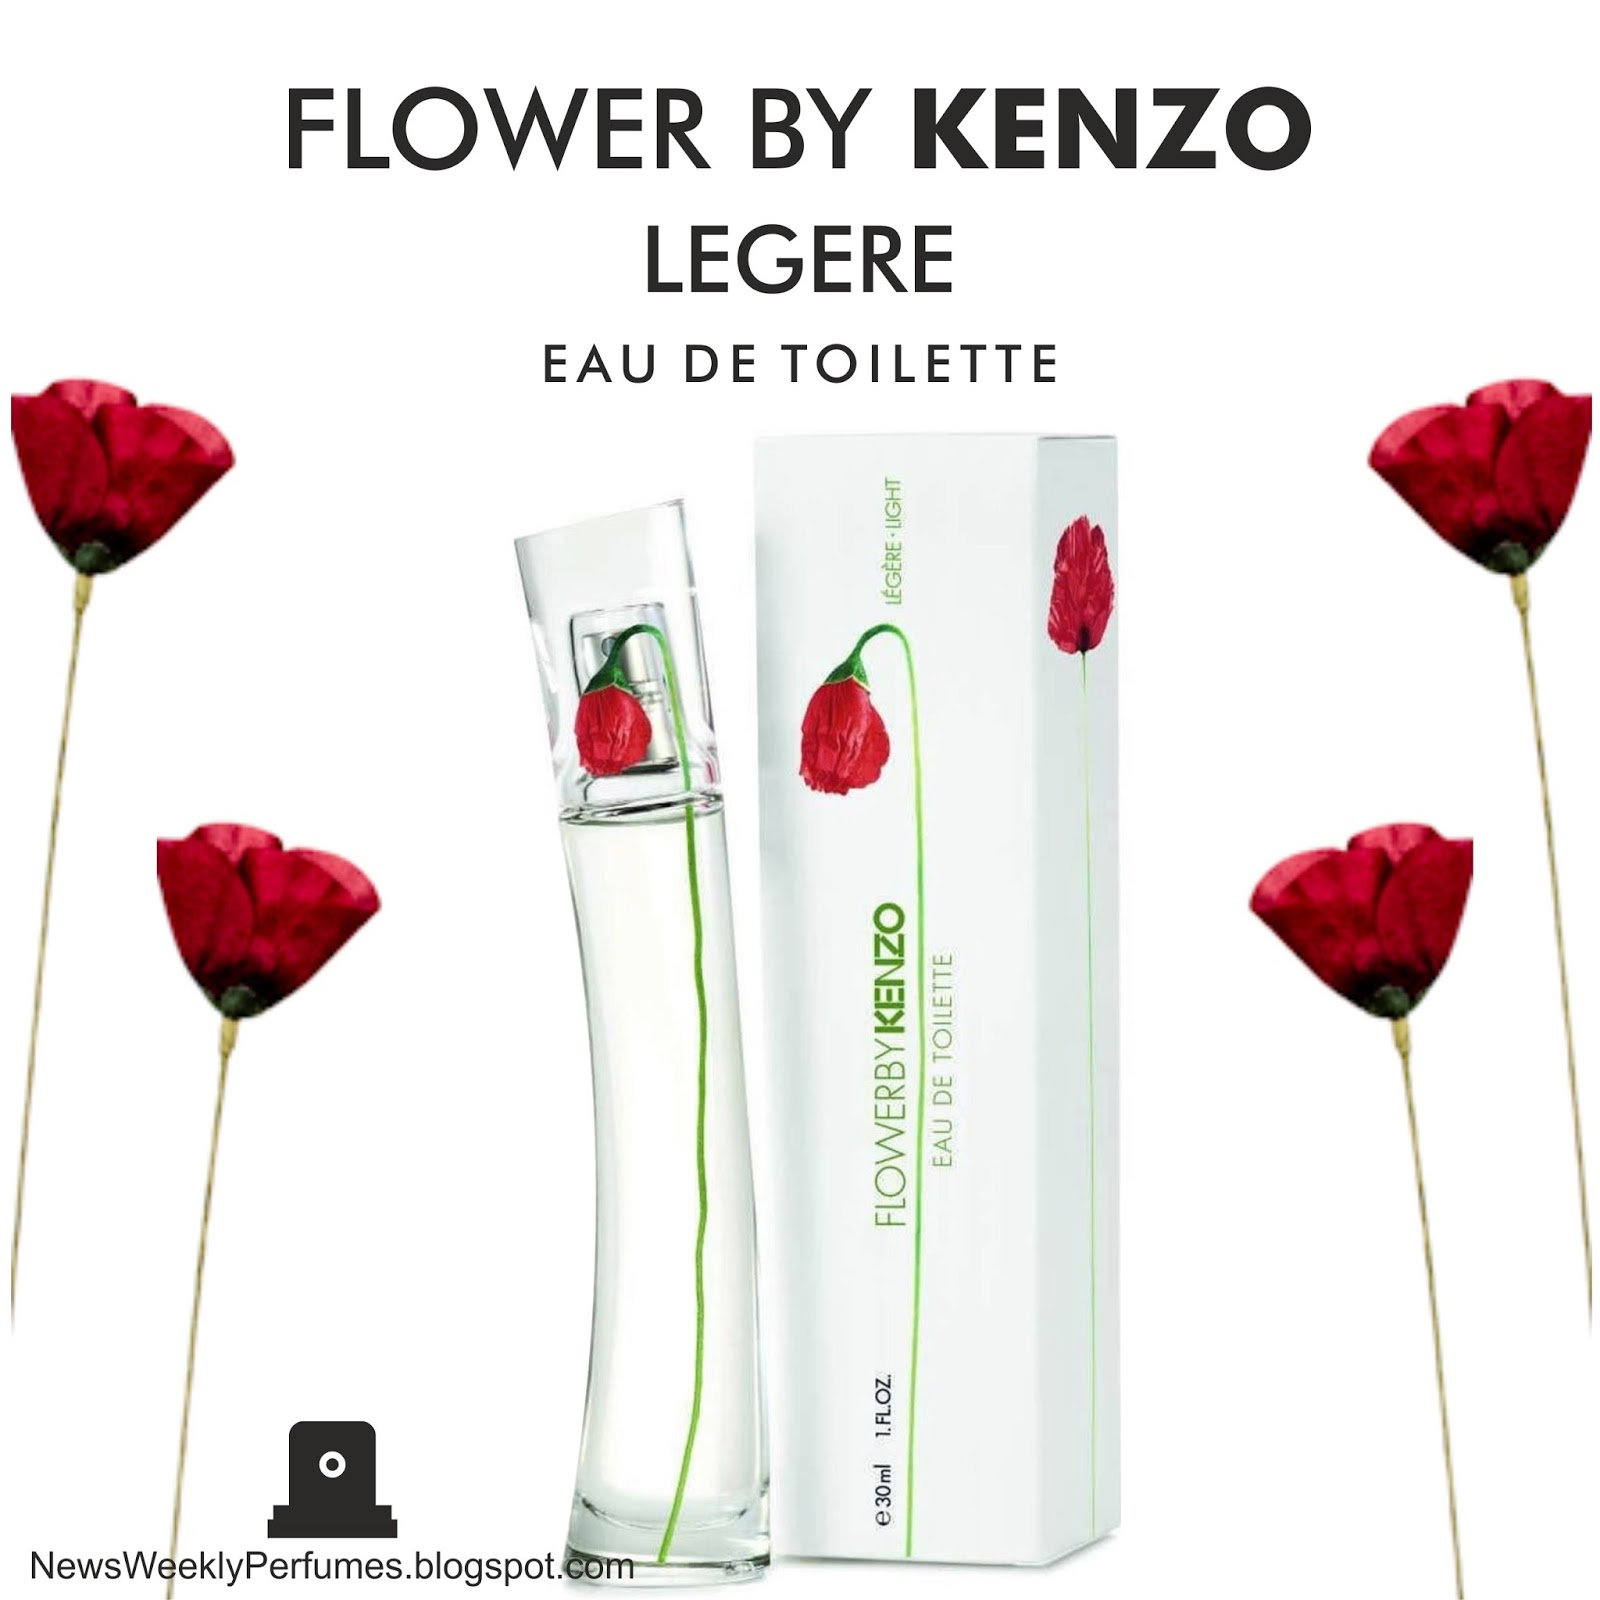 a57bc4f72 Kenzo launches Flower by Kenzo Legere Light as a limited edition in 2015, a  new women fragrance. Flower by Kenzo Legere is a Floral perfume.